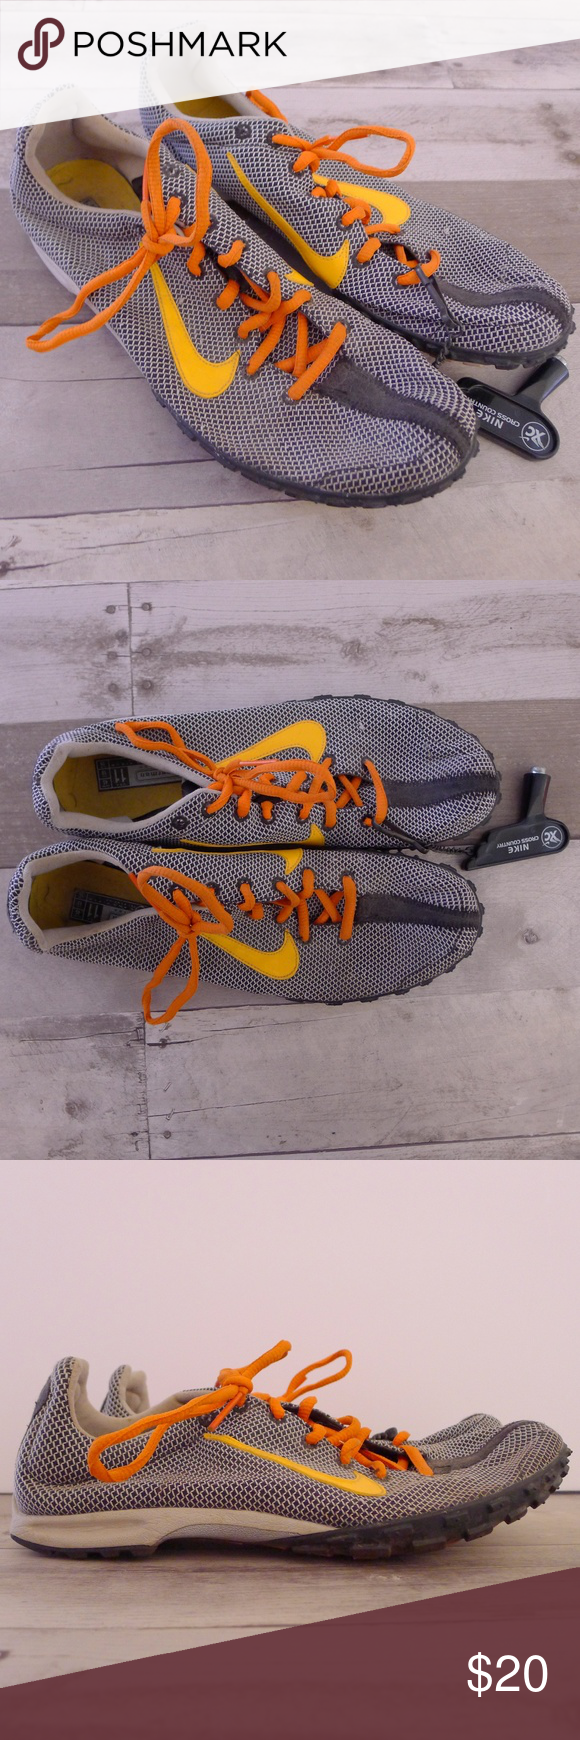 ad9fcaf182d0d Nike Bowerman Track and Field Spikes Good condition. No spikes included.  C02 Nike Shoes Athletic Shoes